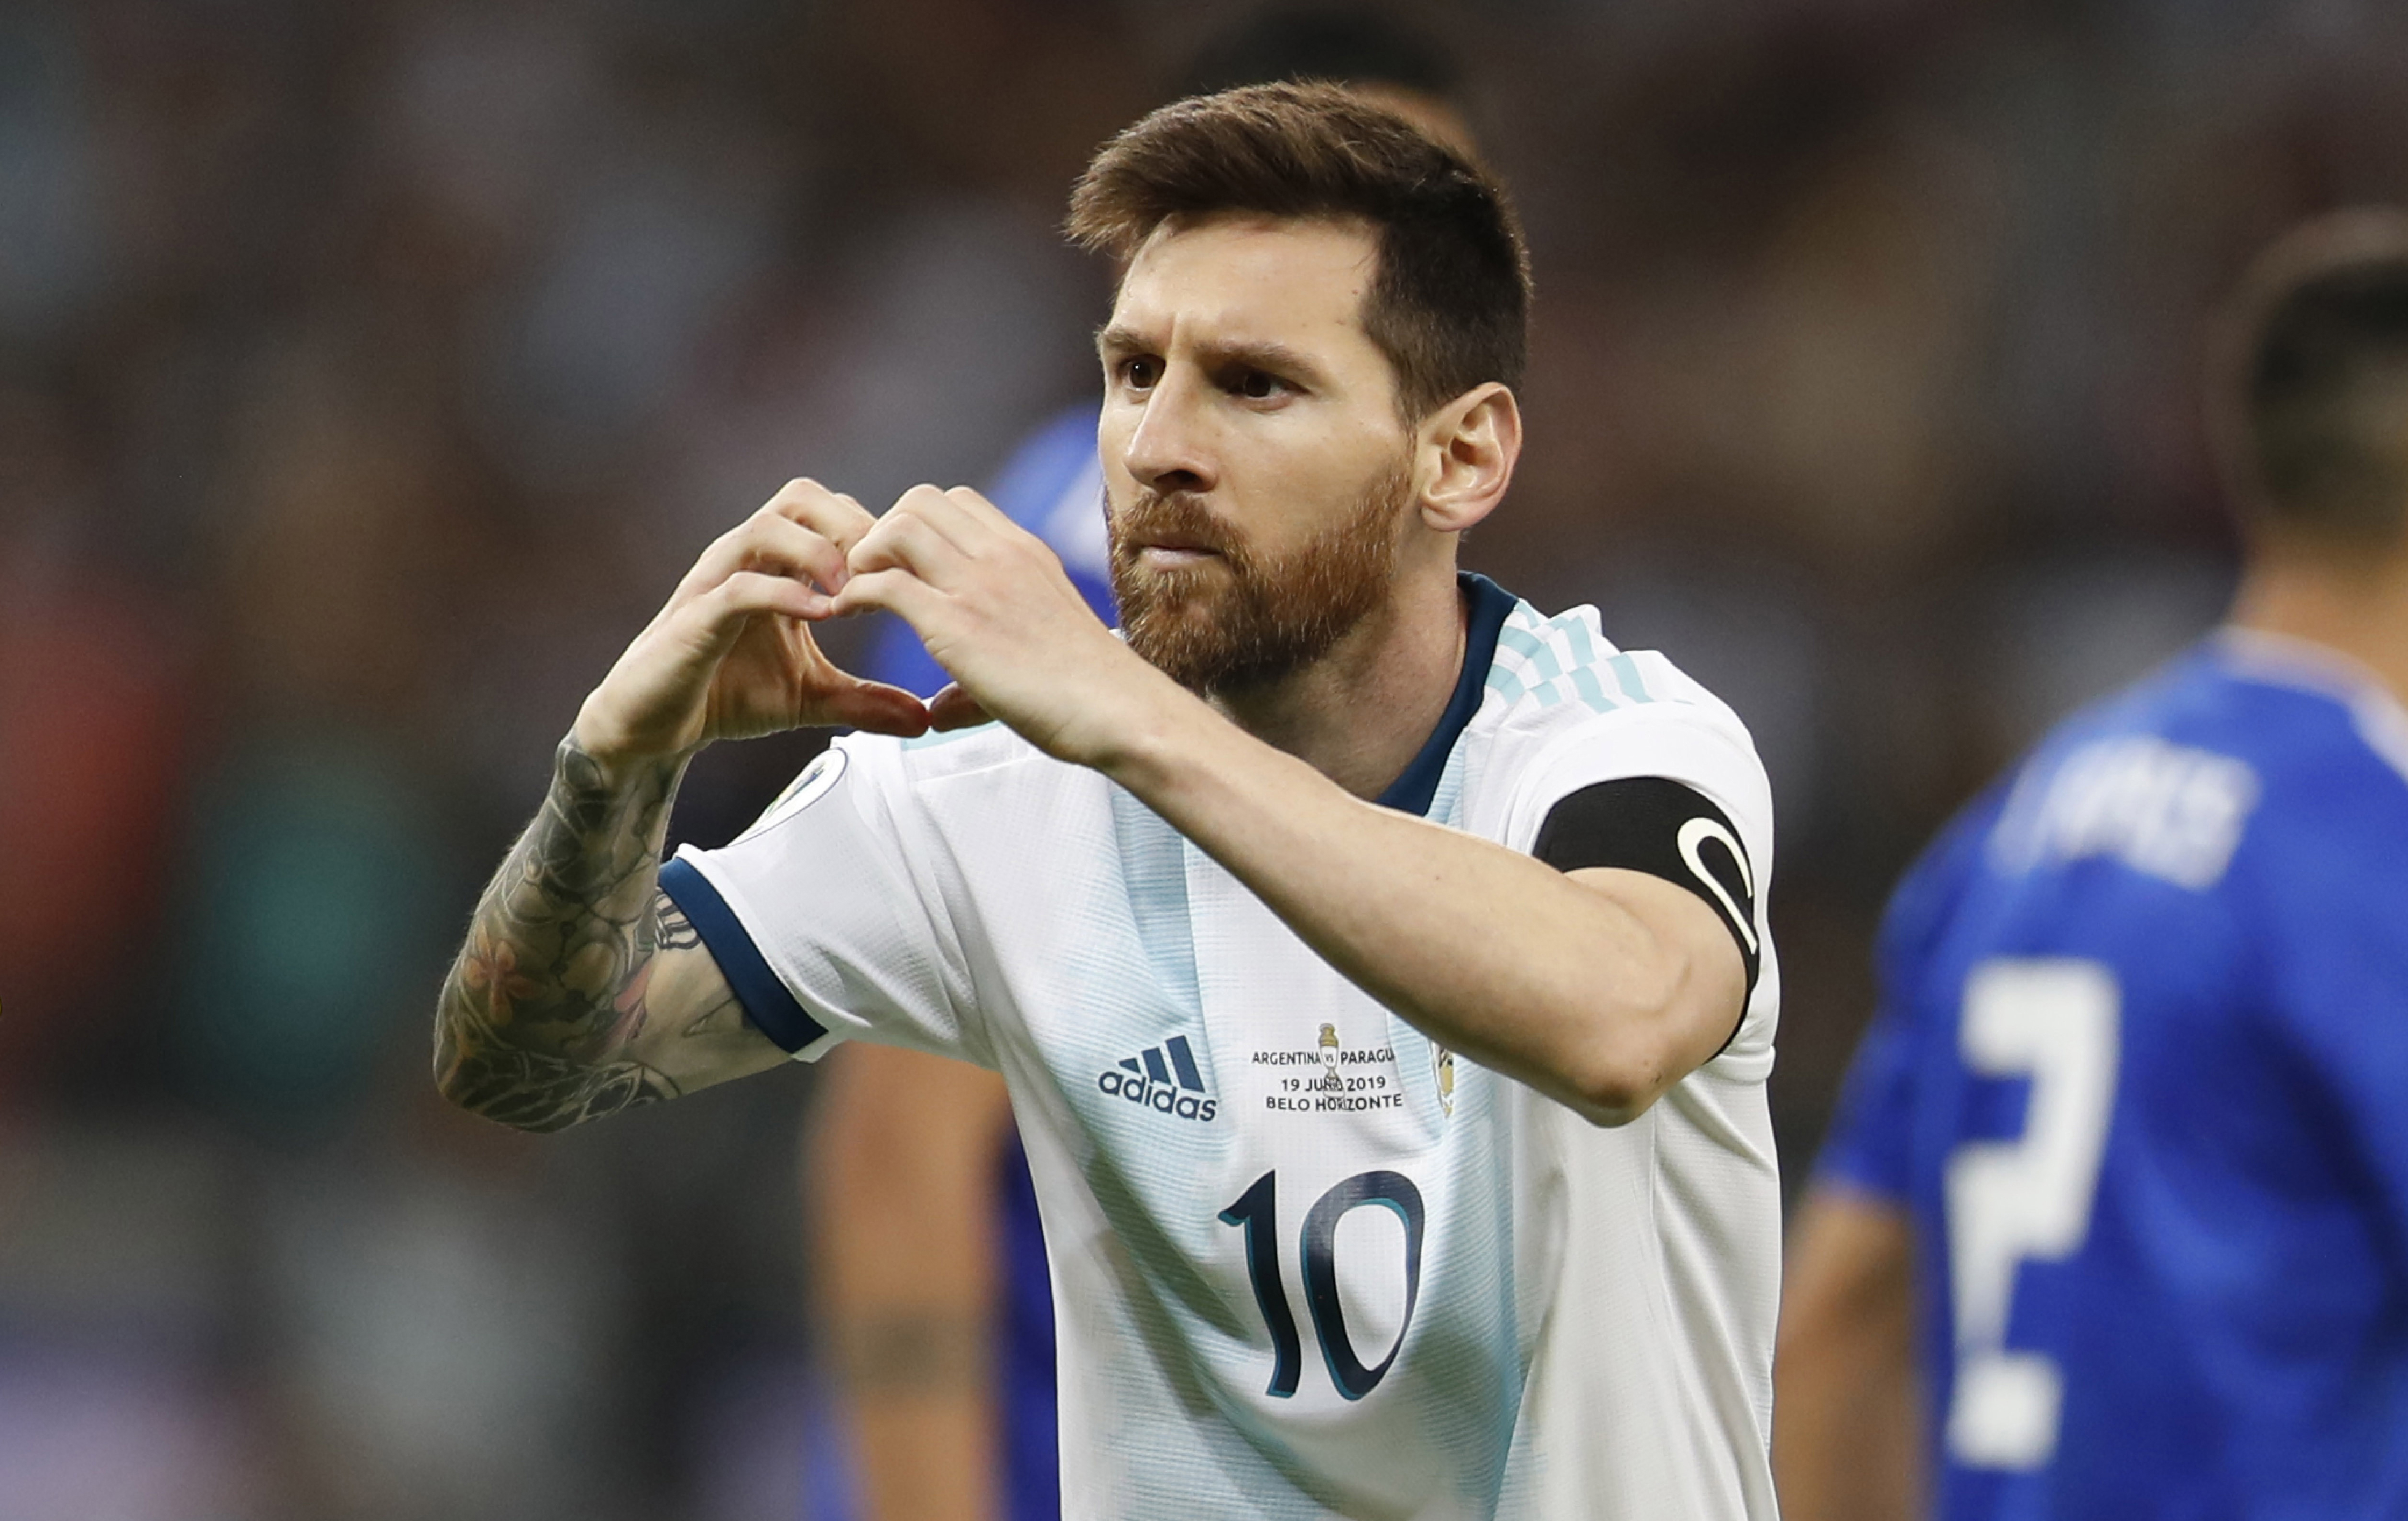 No player has scored more goals for Barcelona or Argentina than Messi